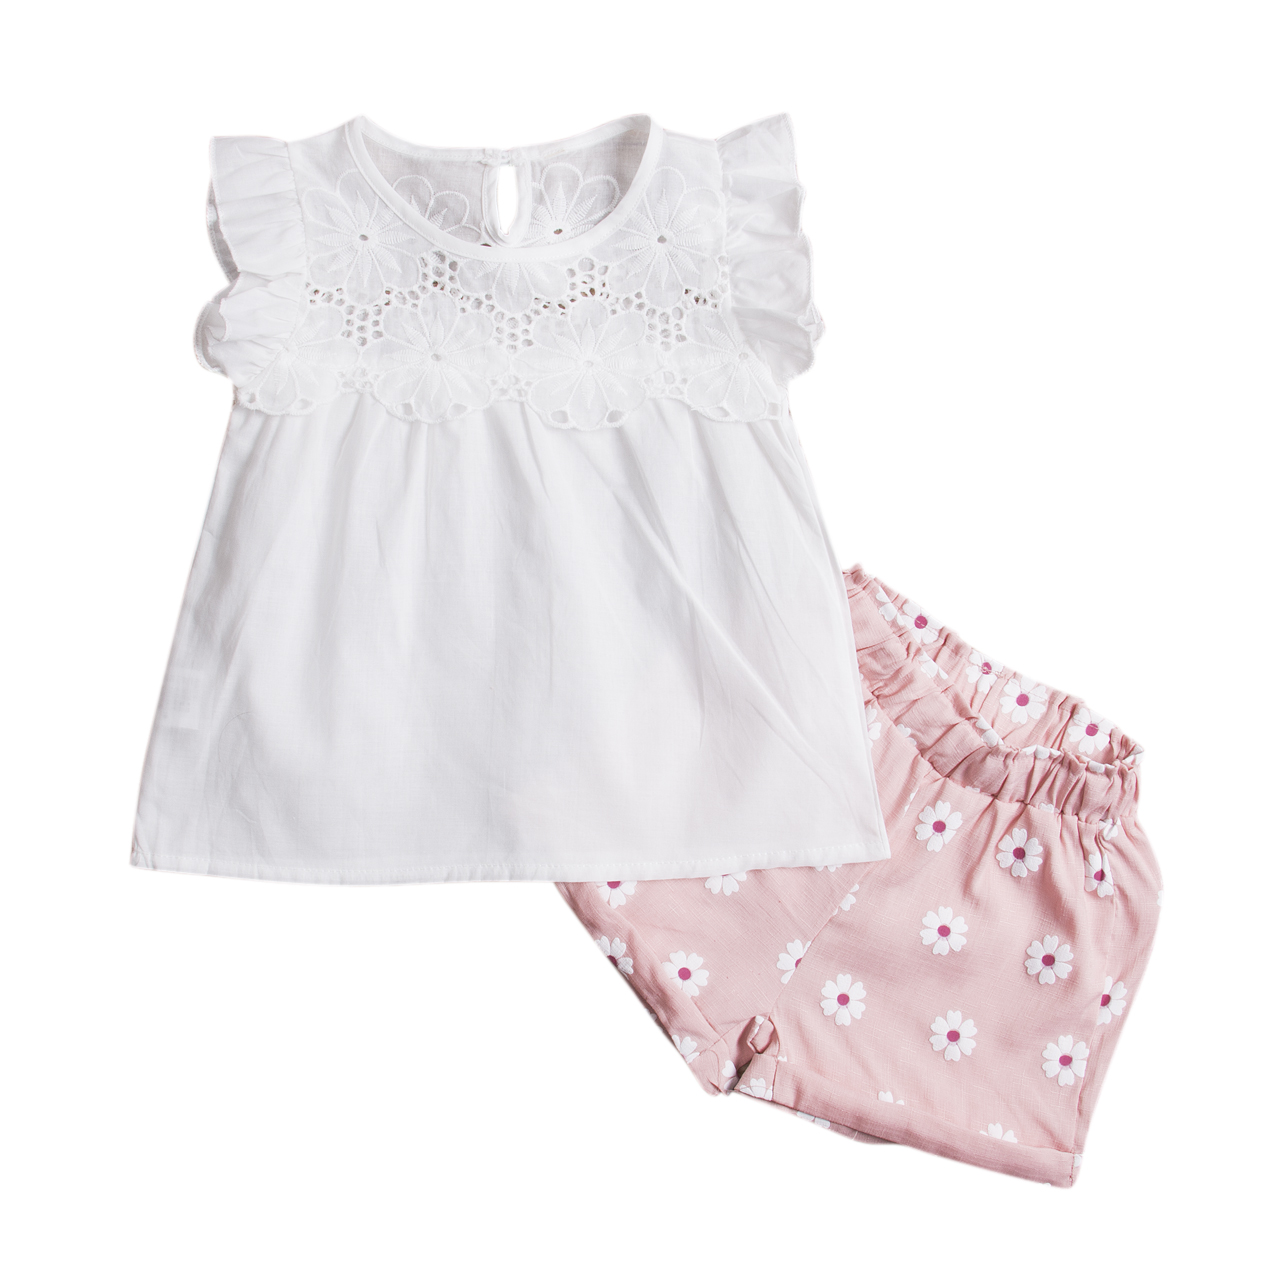 2-7Y Toddler Kids Baby Girls Summer Outfits Clothes Set Lace Sleeveless Floral Cotton Blouse Tops+ Short Pants 2PCS Set Sunsuit baby girl 1st birthday outfits short sleeve infant clothing sets lace romper dress headband shoe toddler tutu set baby s clothes